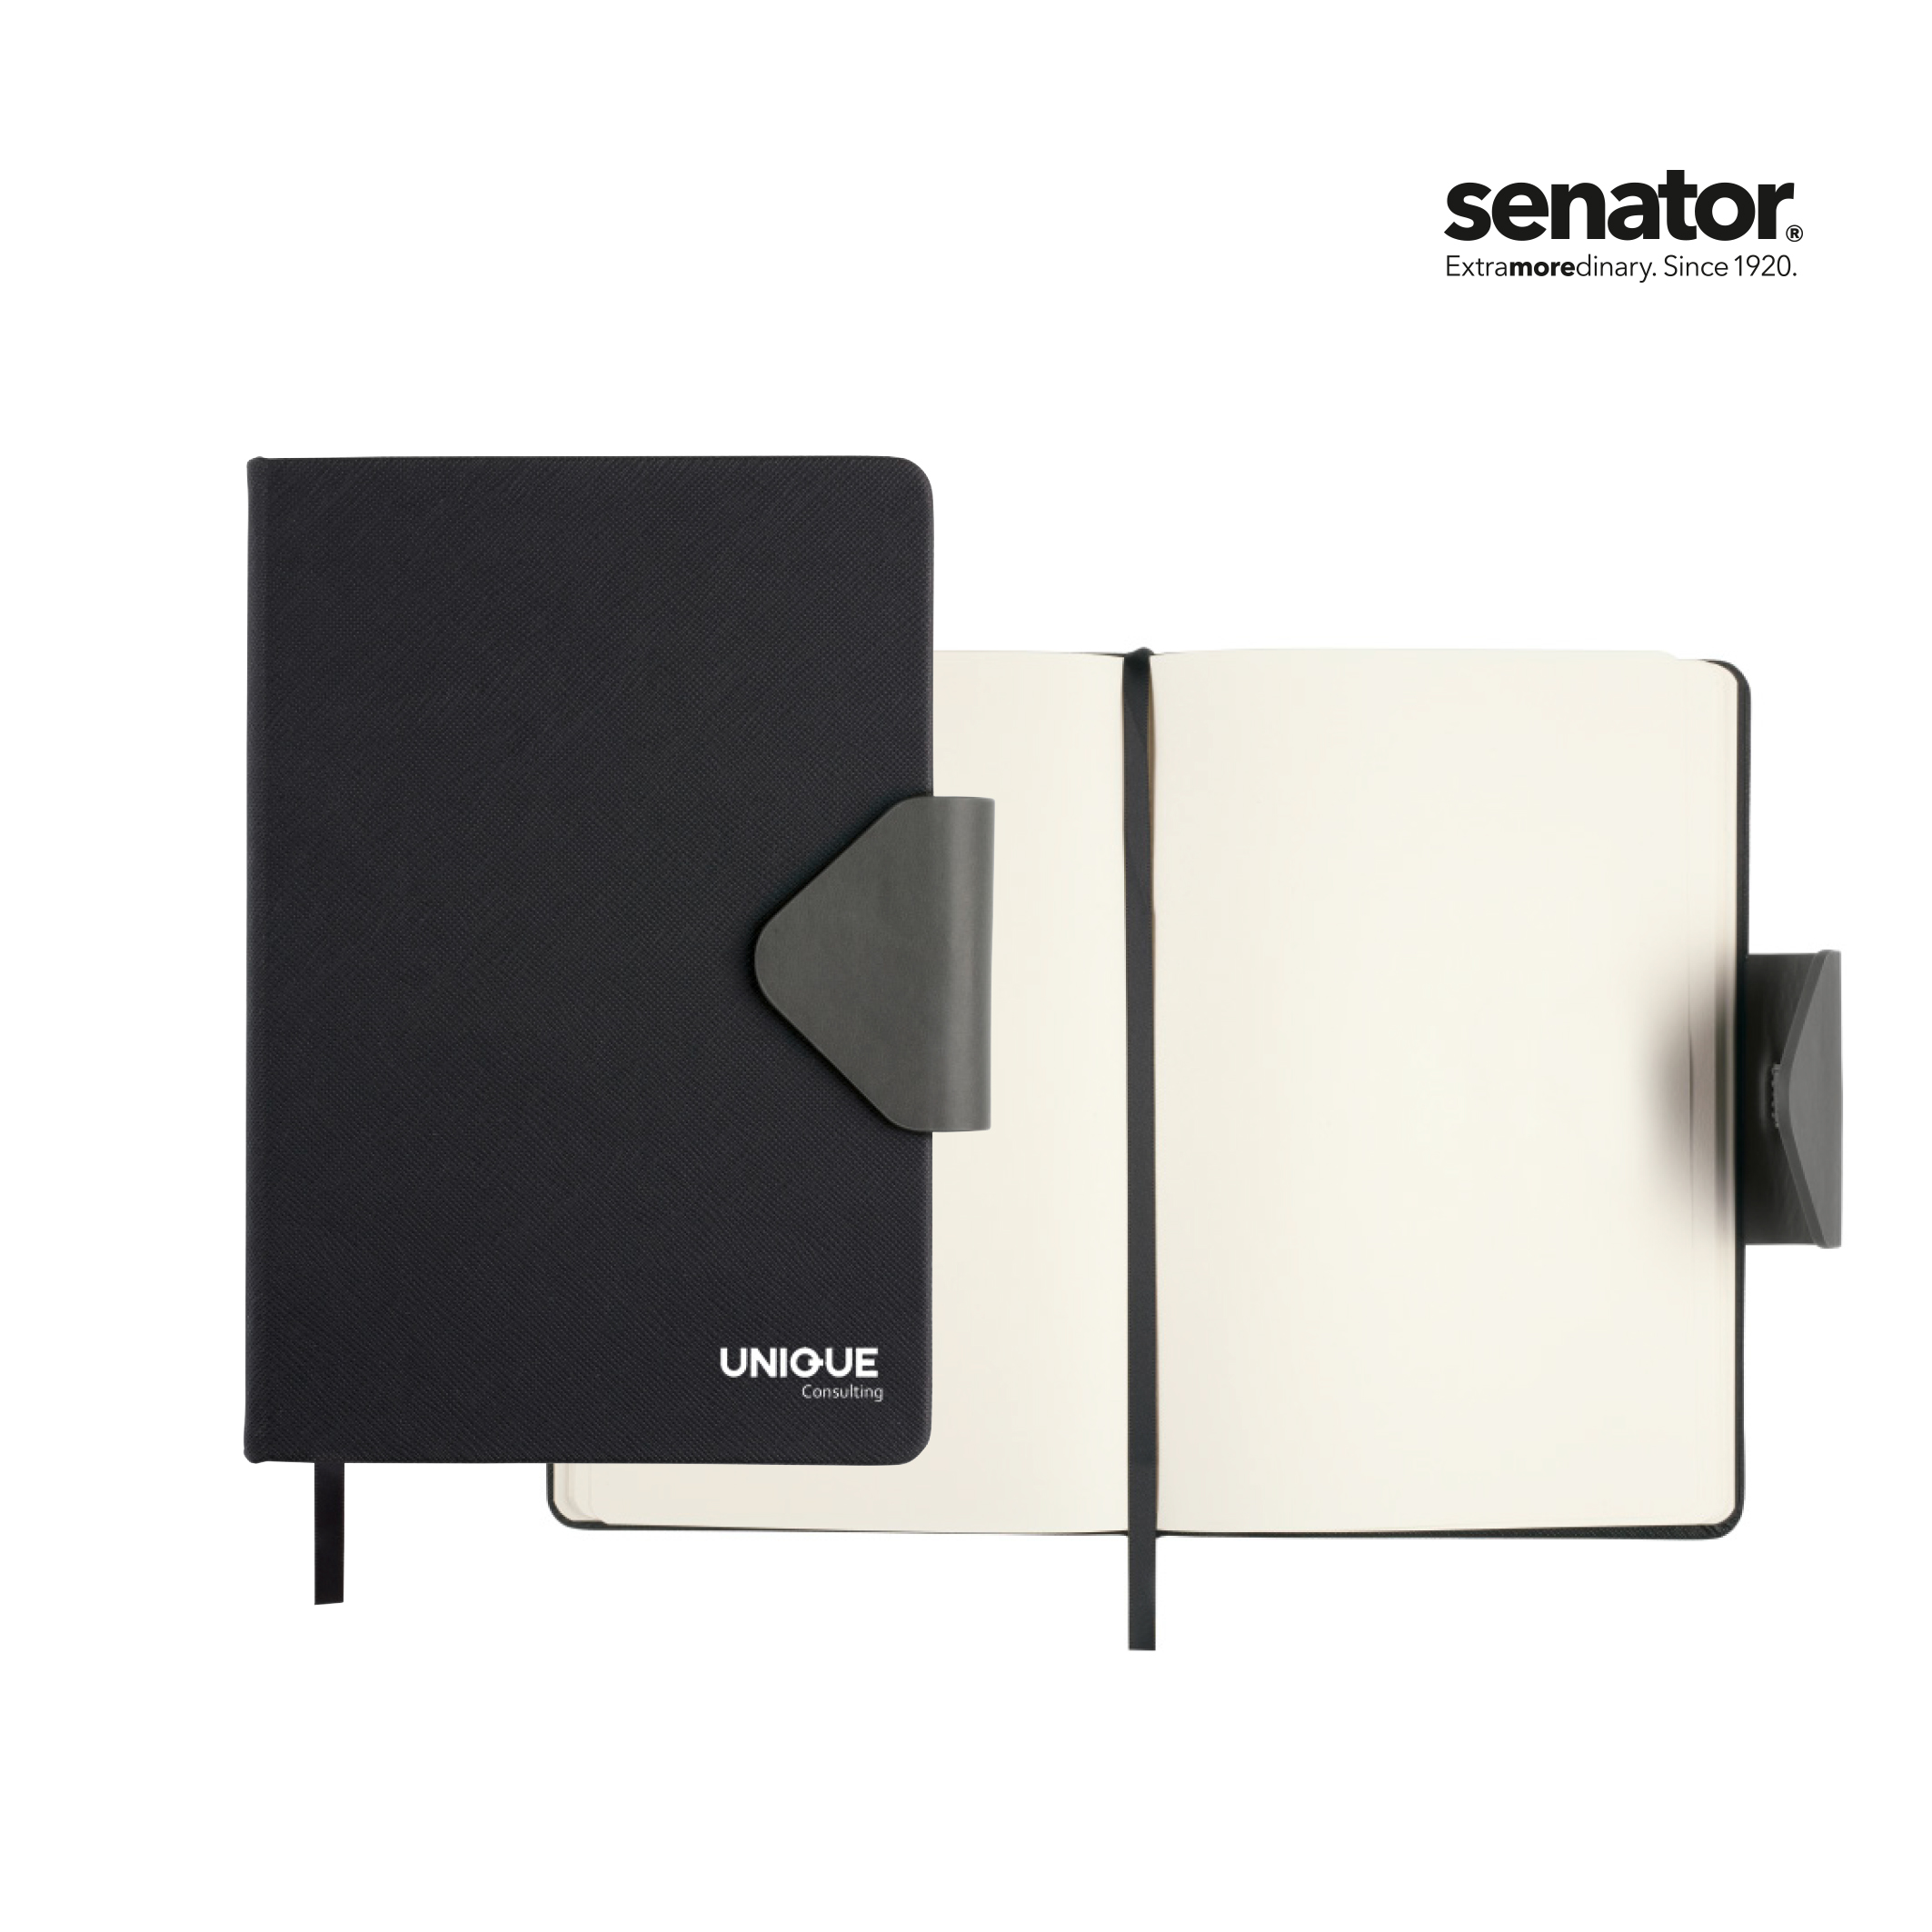 senator Notebook with structure and magnet